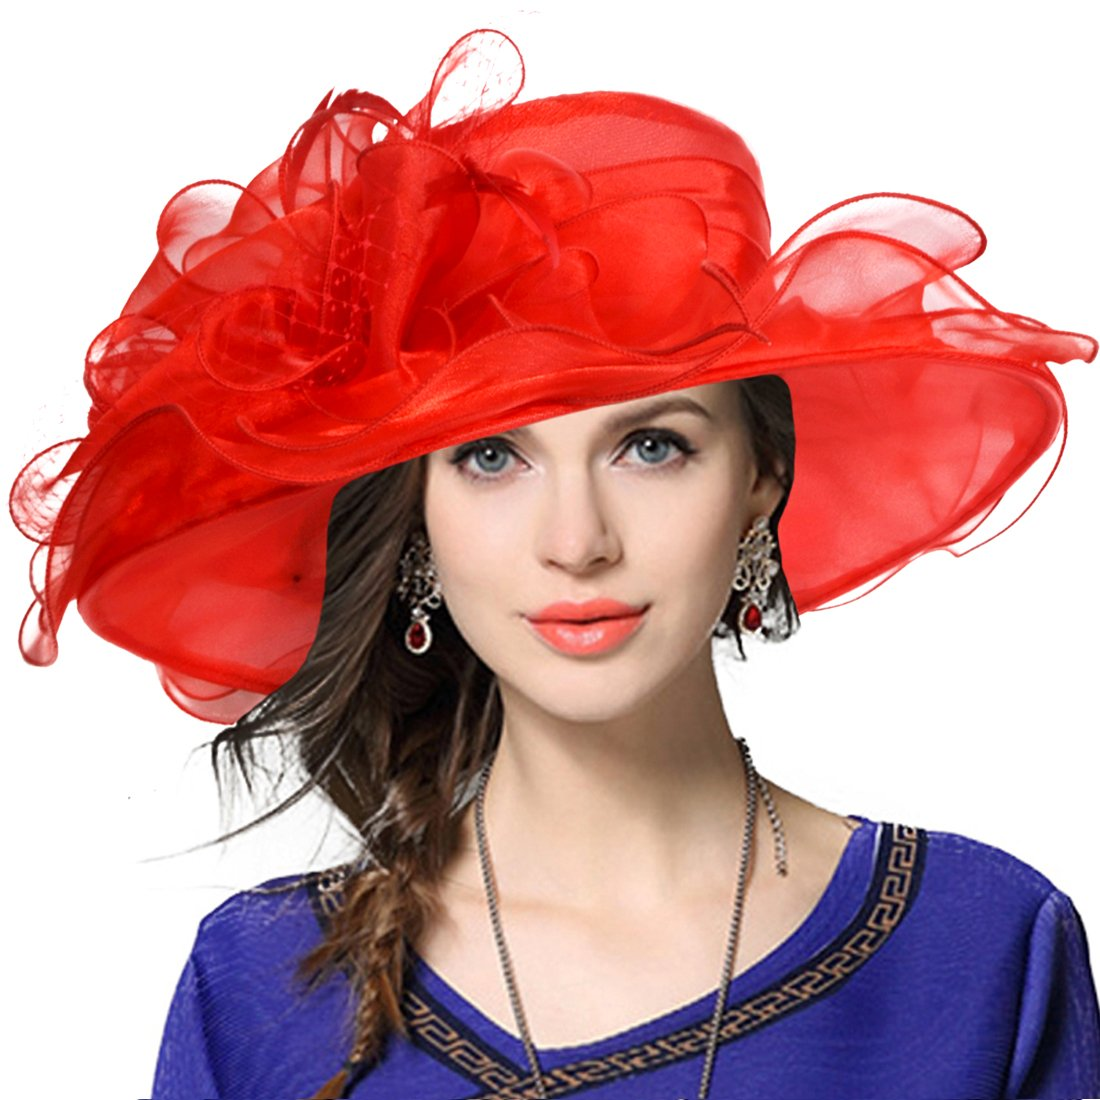 Women's Church Derby Dress Fascinator Bridal Cap British Tea Party Wedding Hat (Red)